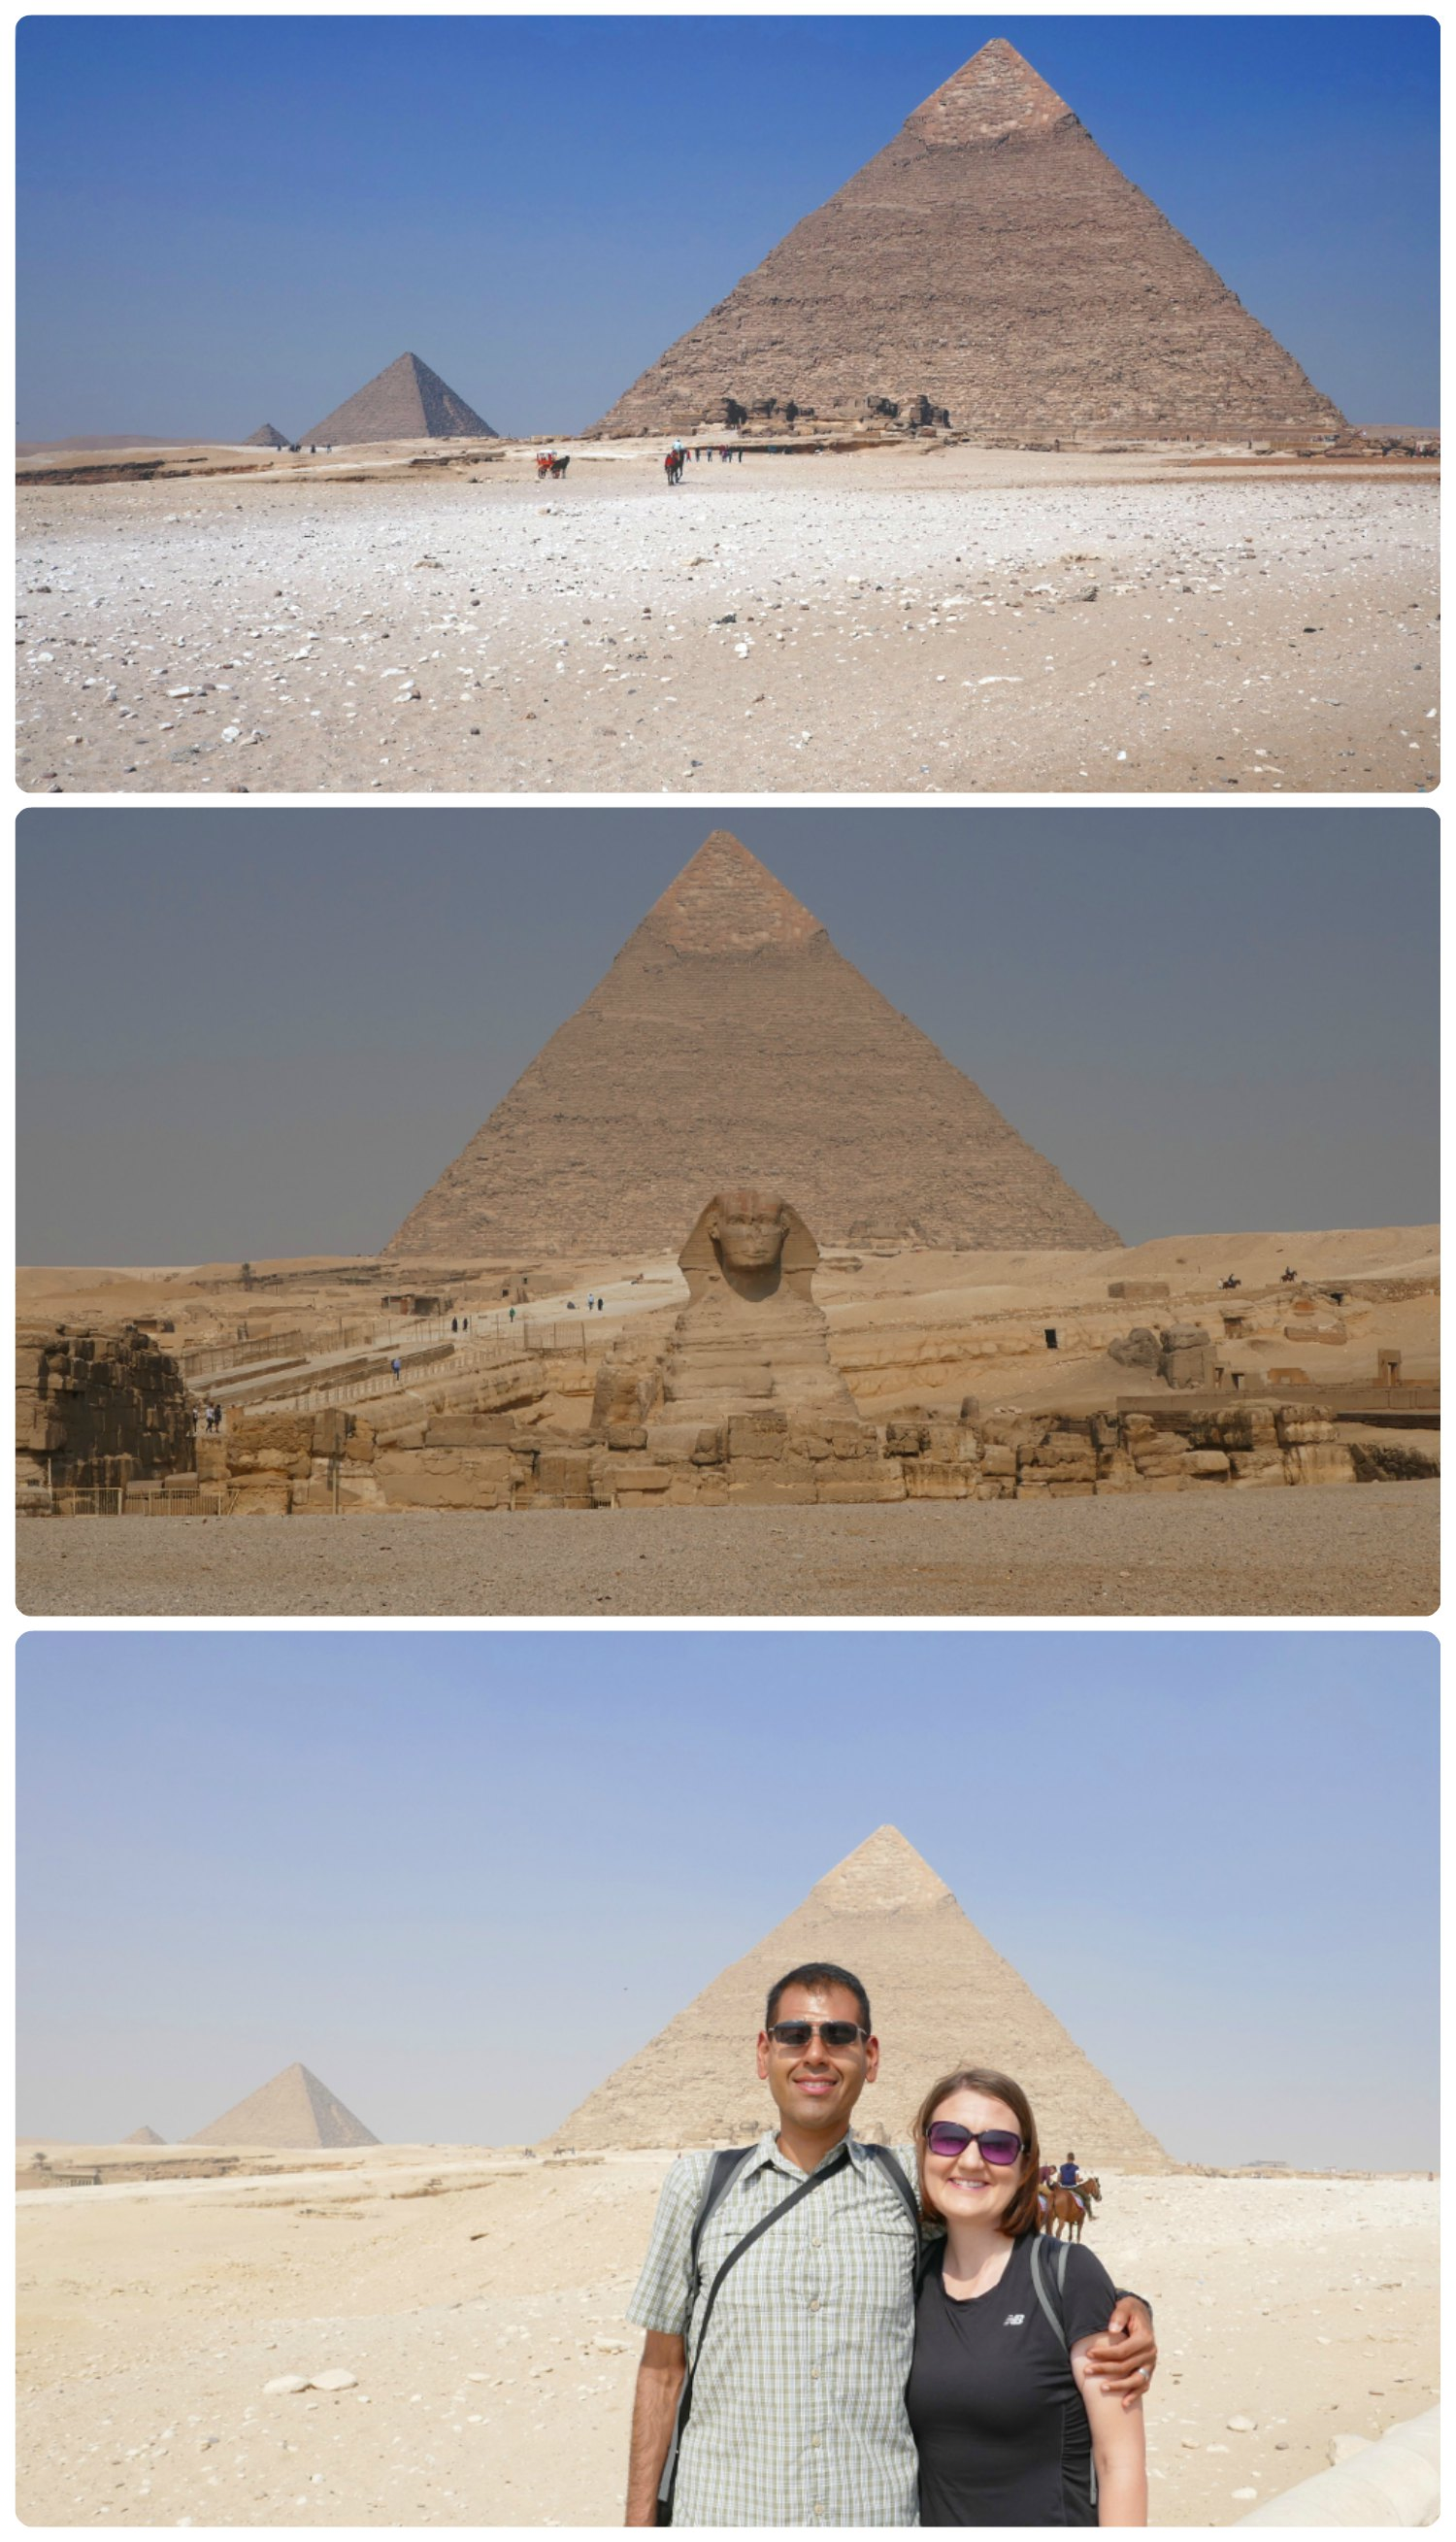 Top to bottom:Pyramid of Khafre with Menkaure's Pyramid to the left side of it, Pyramid of Khafre towering over the Great Sphinx of Giza, us in front of the Pyramid of Khafre.